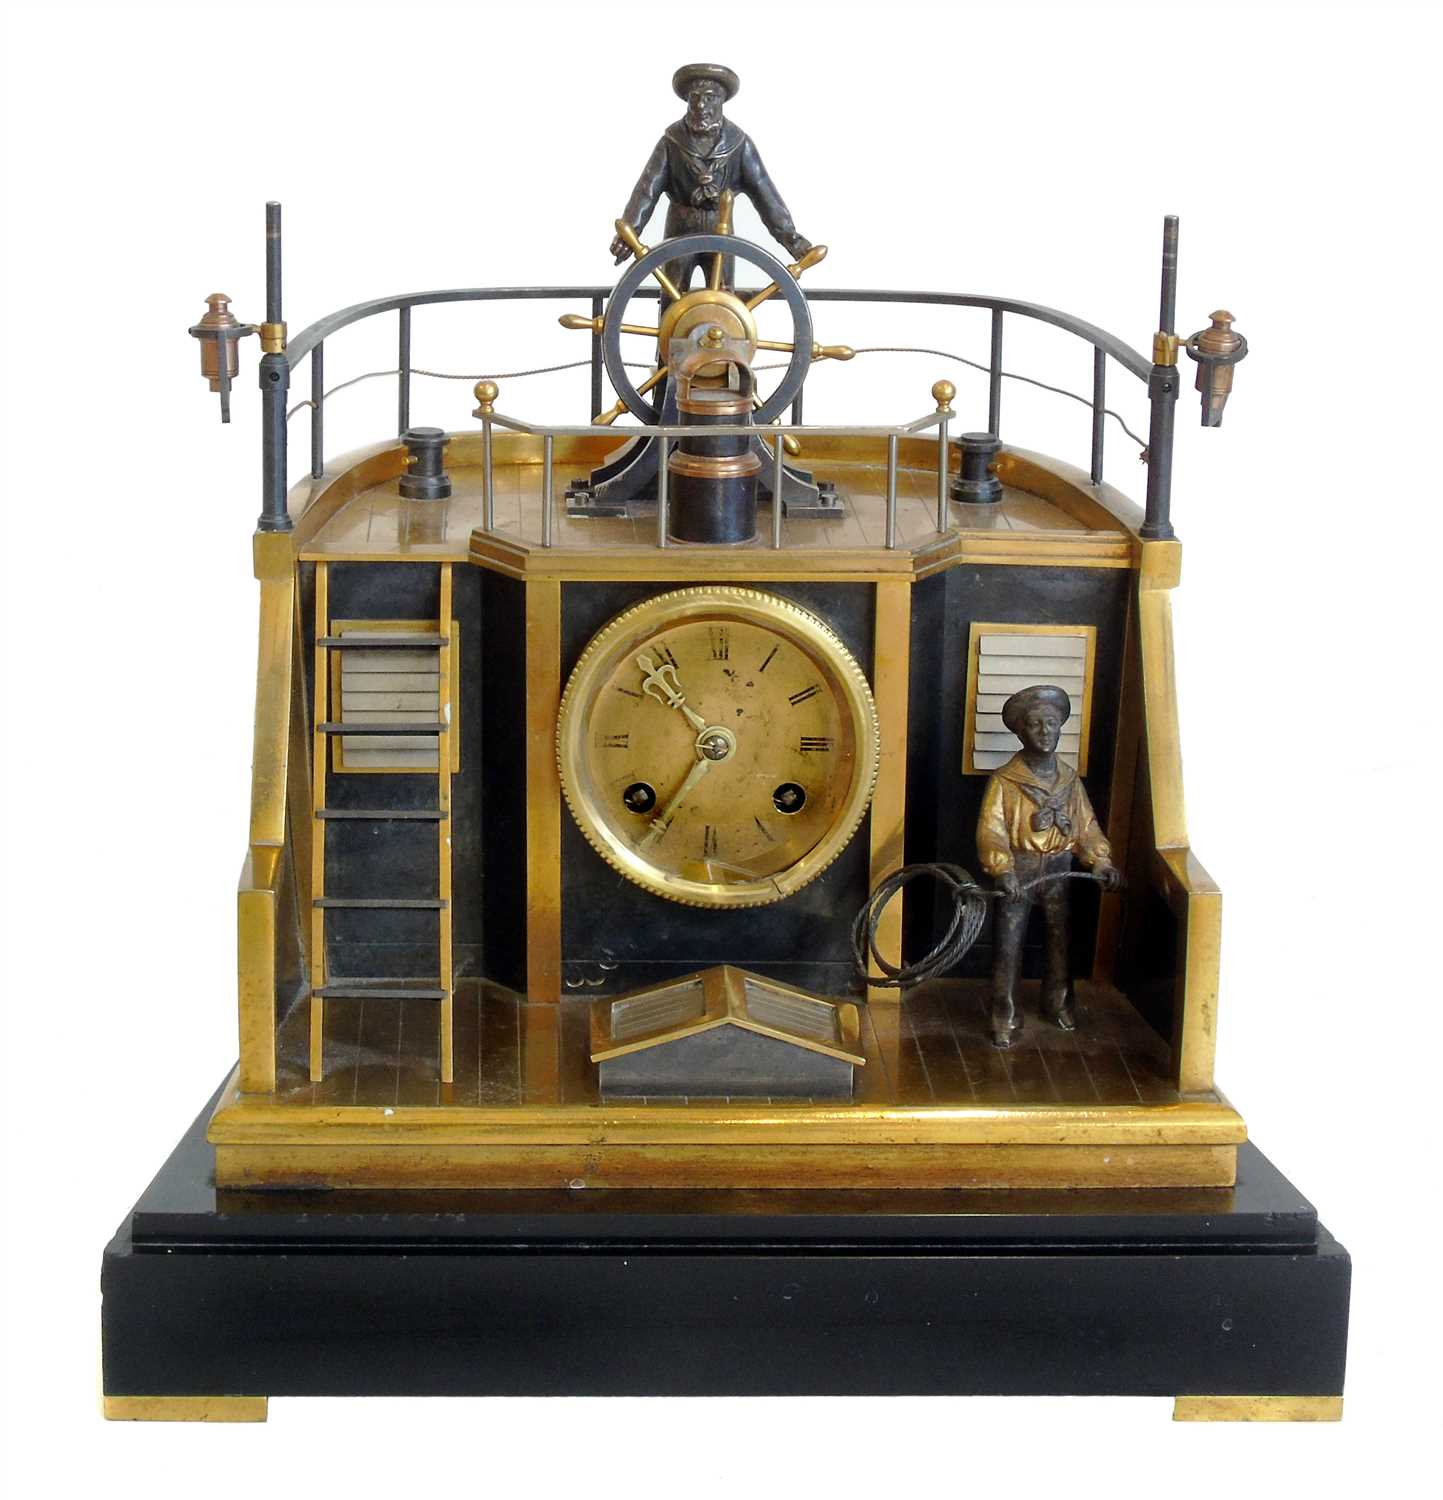 Lot 292-Late 19th century French gilt brass and steel novelty 'quarterdeck' mantel clock